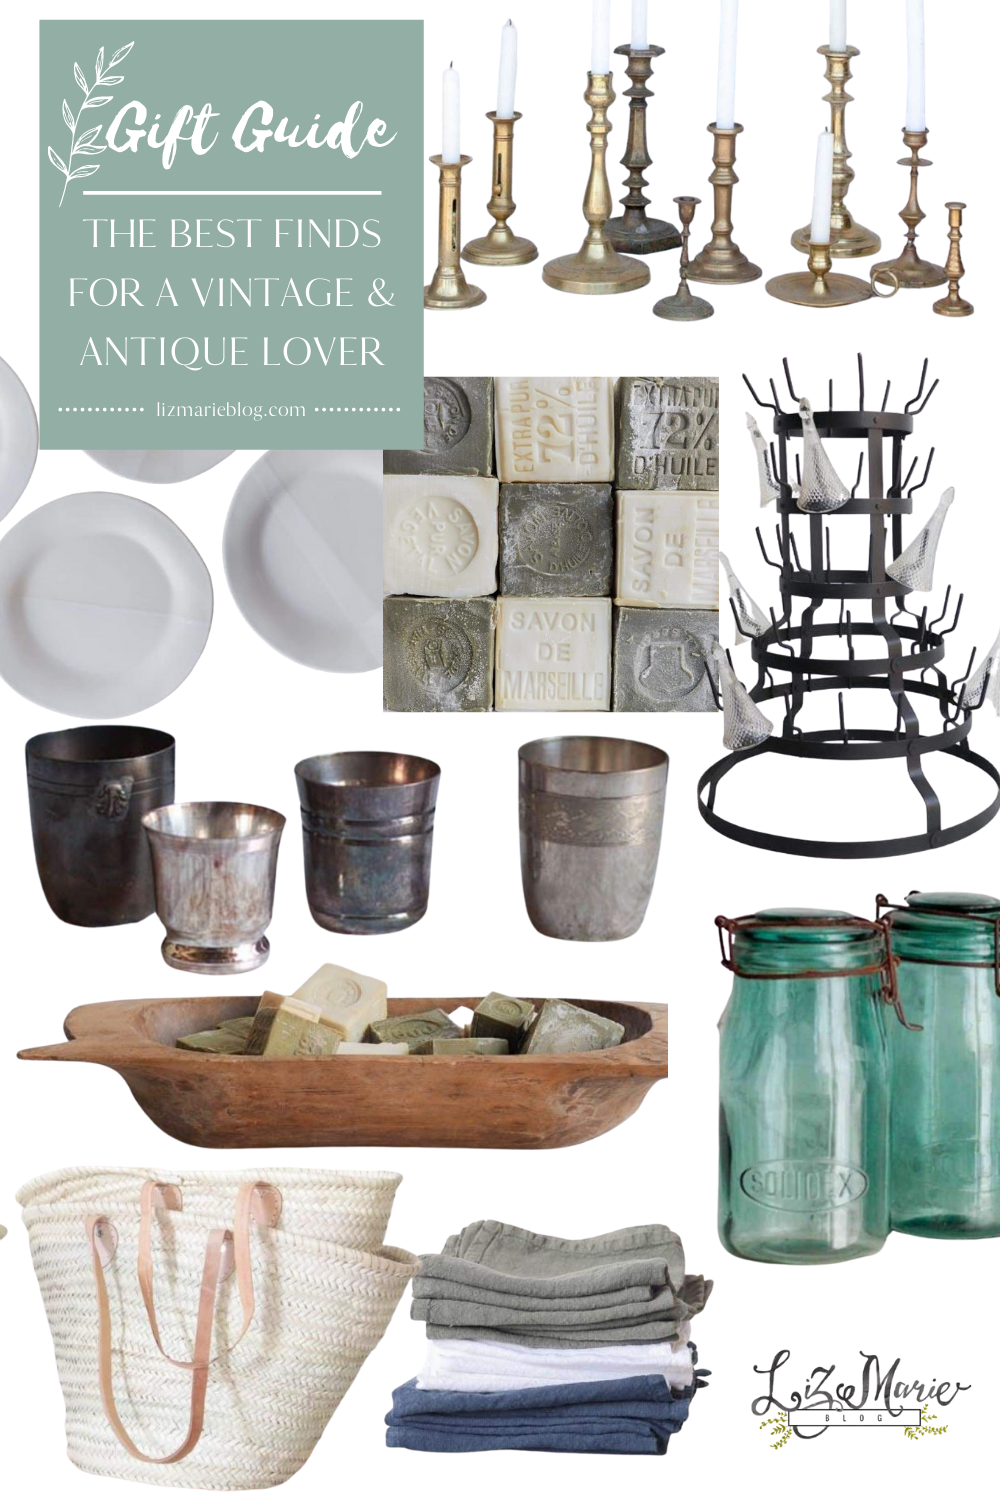 Gift Guide for Vintage & Antique Lover